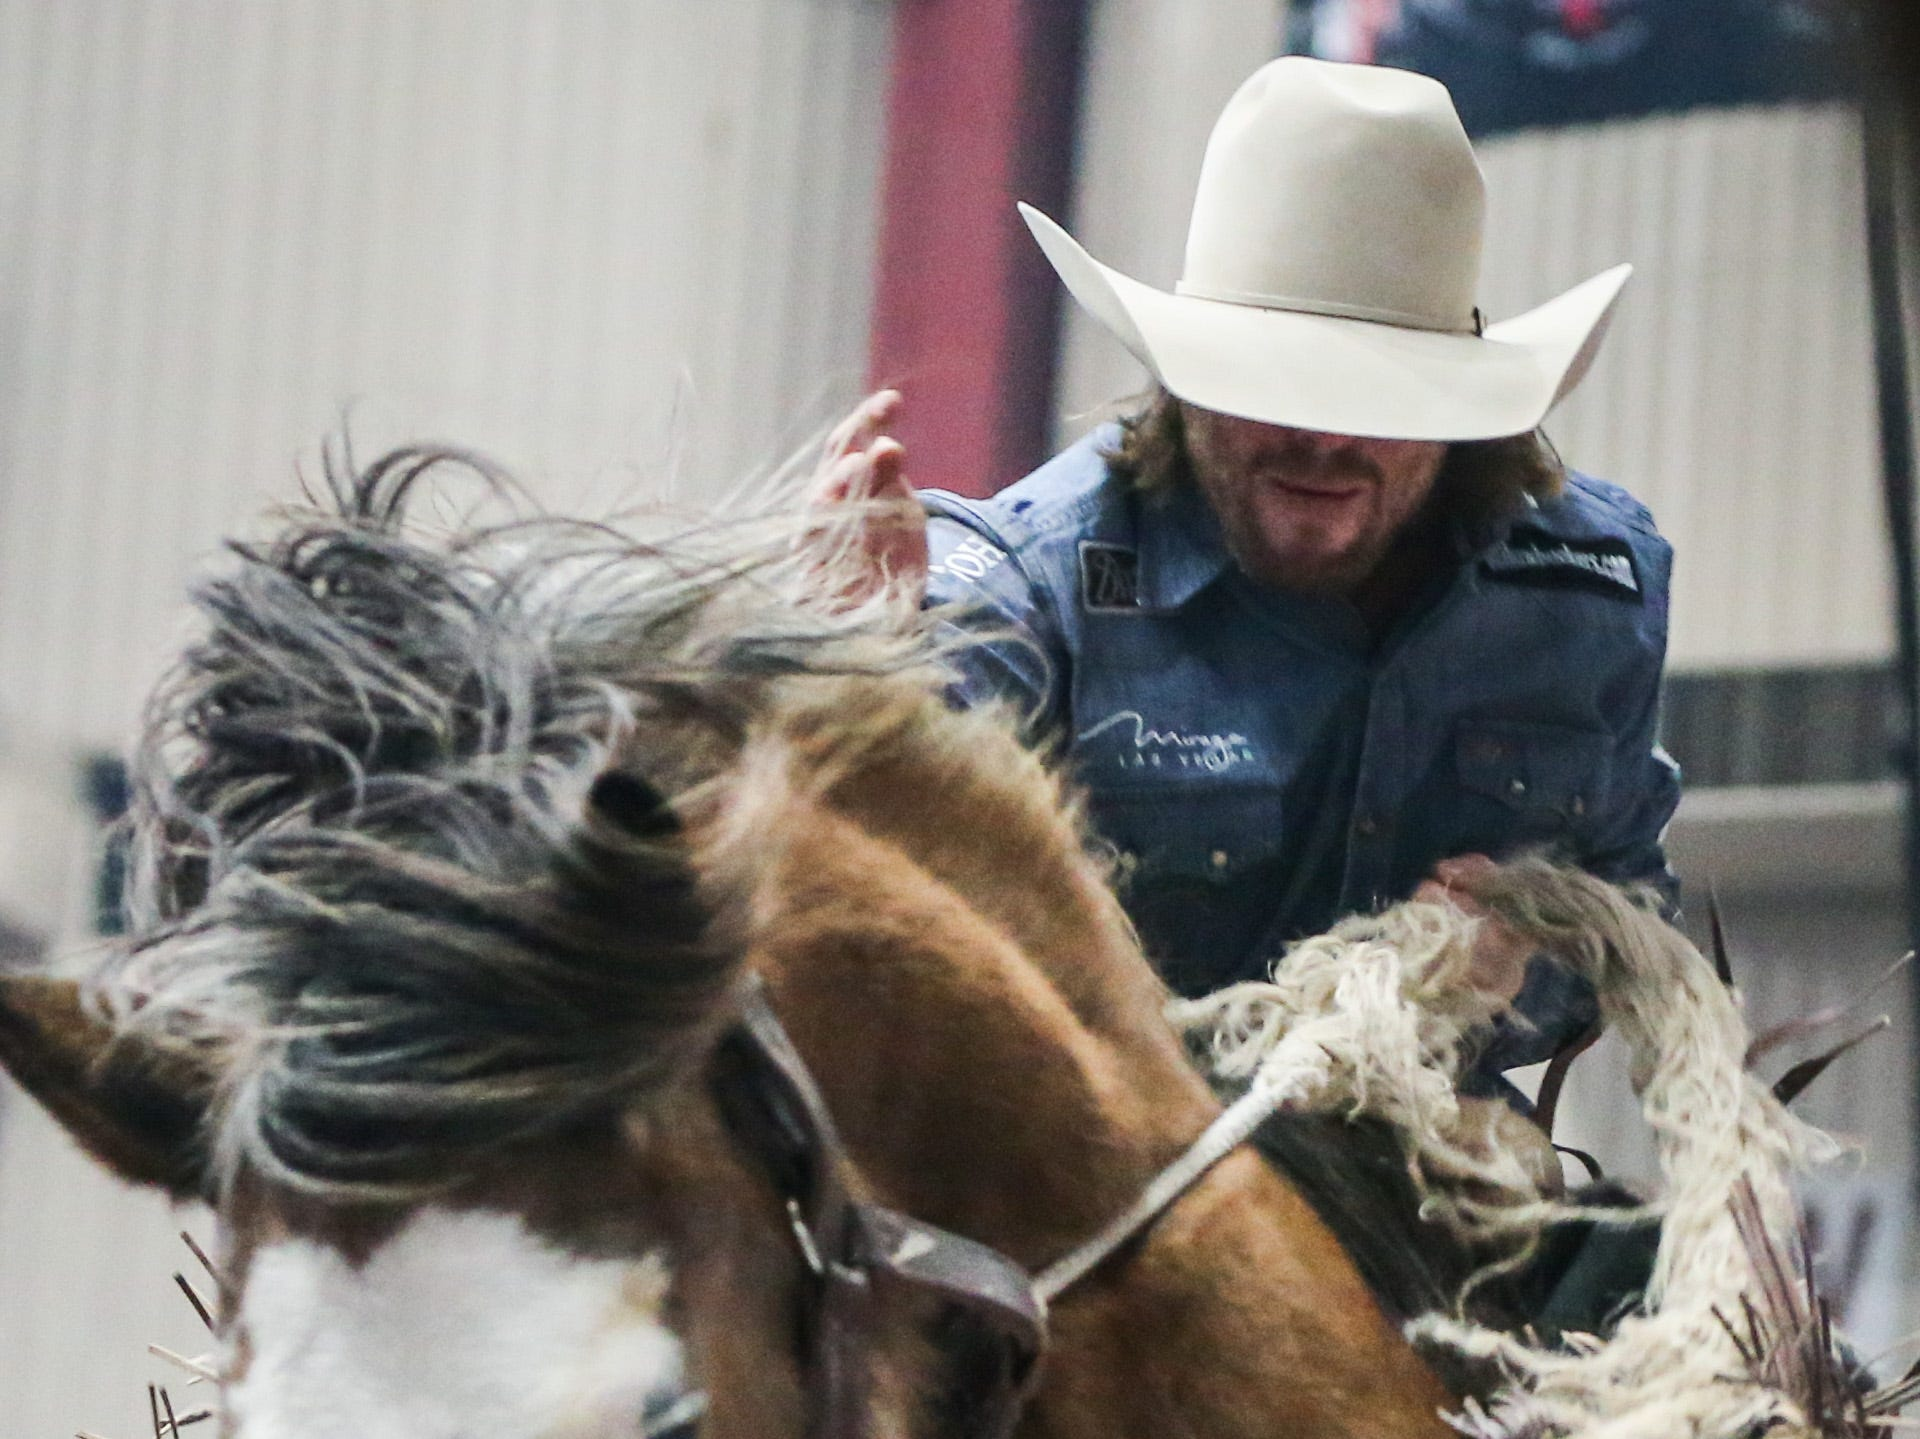 Sort Scheer rides Raise Your Glass during the San Angelo Stock Show & Rodeo show Saturday, Feb. 9, 2019, at Foster Communications Coliseum.